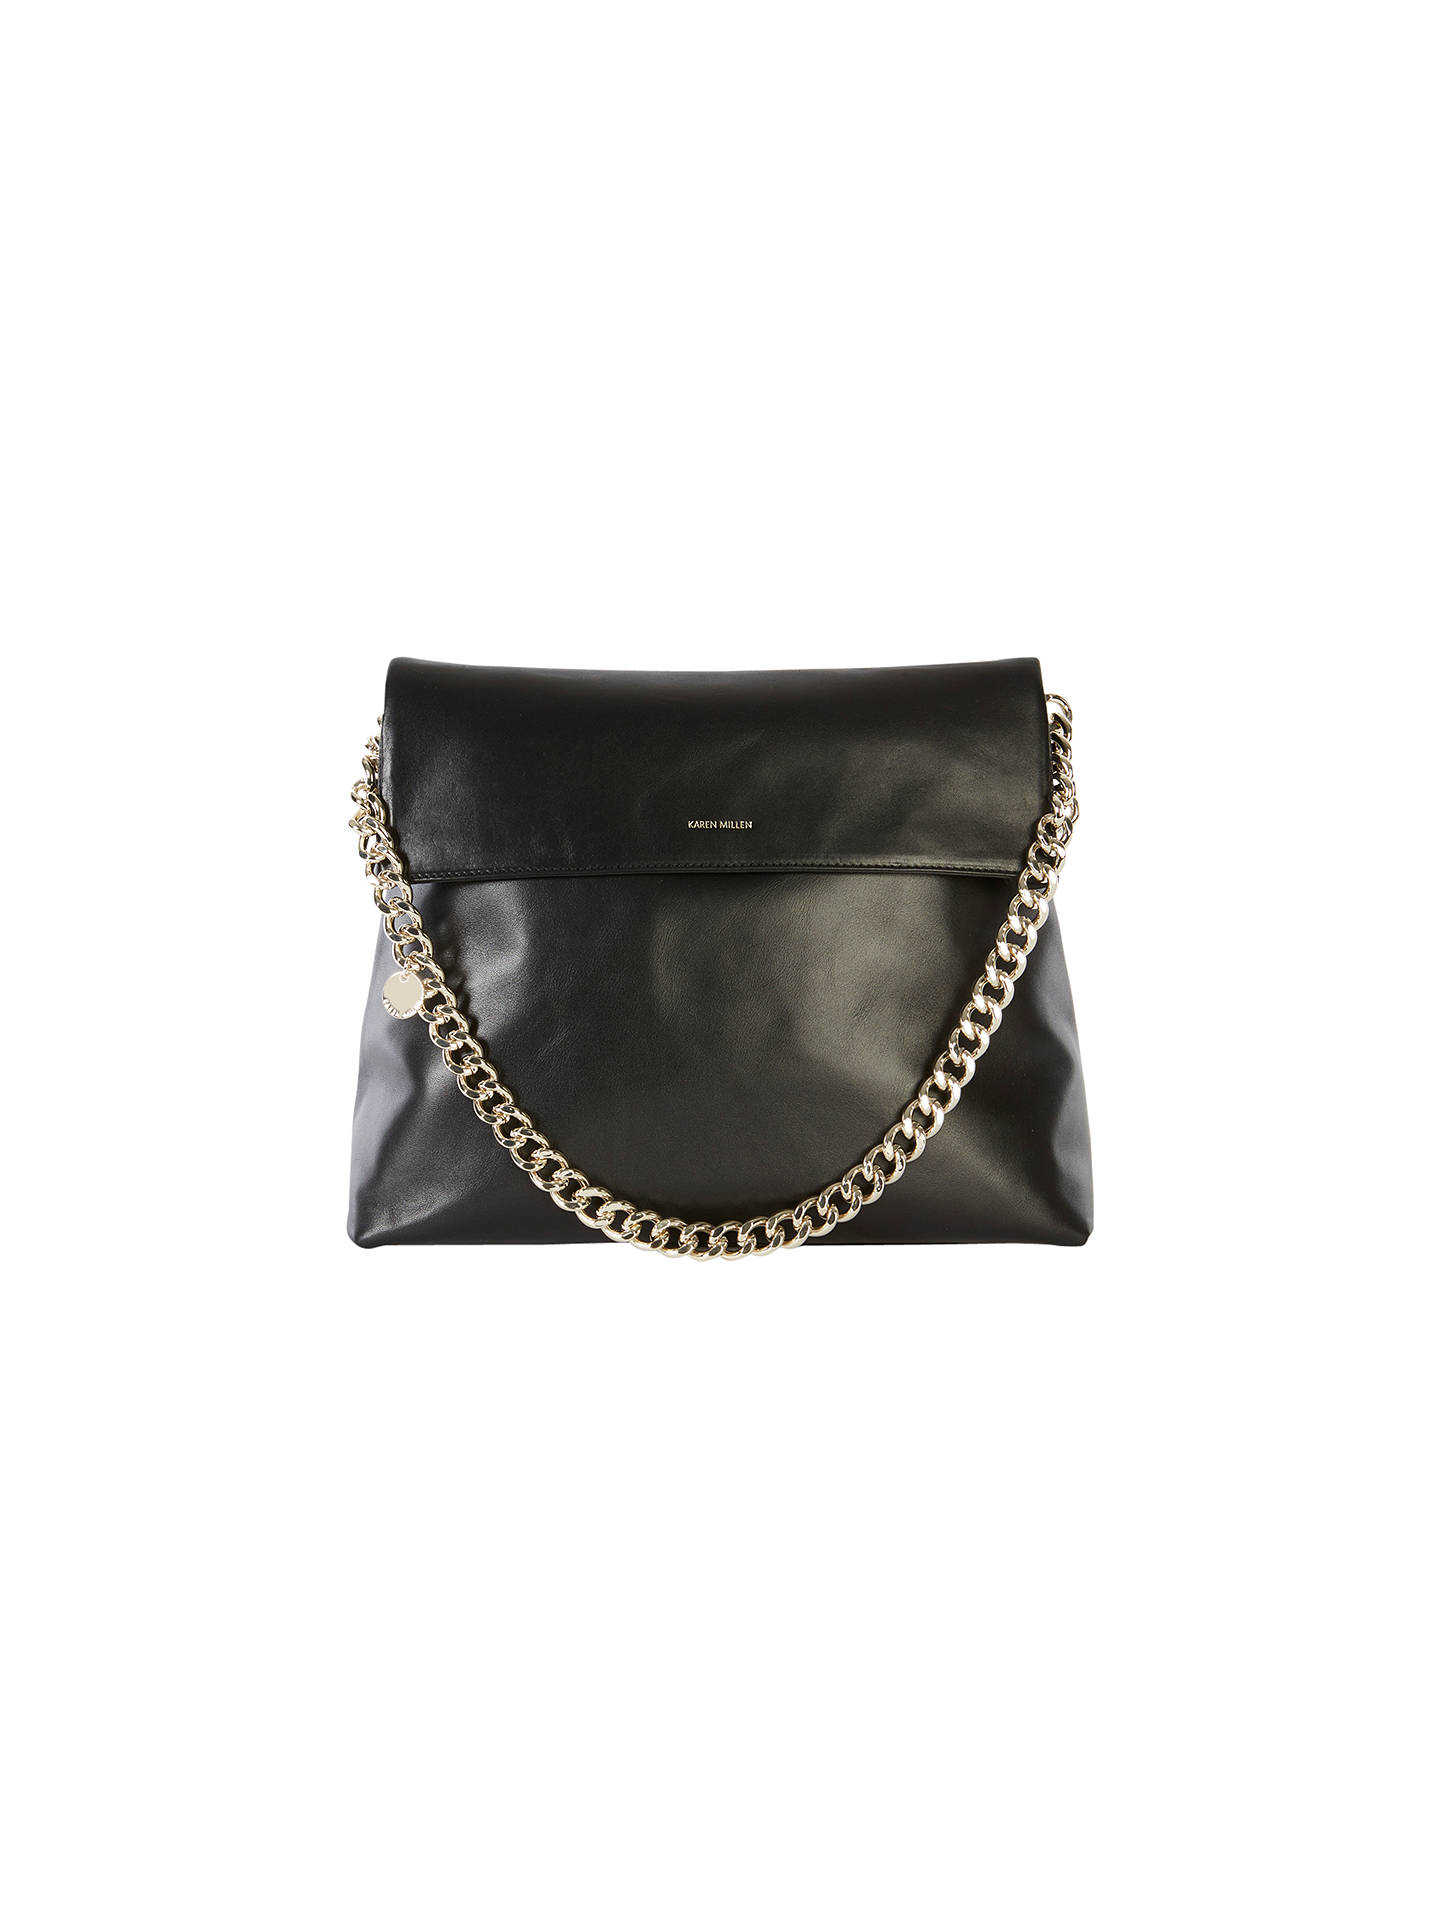 072f4c122ed Buy Karen Millen Leather Oversize Regent Shoulder Bag, Black Online at  johnlewis.com ...